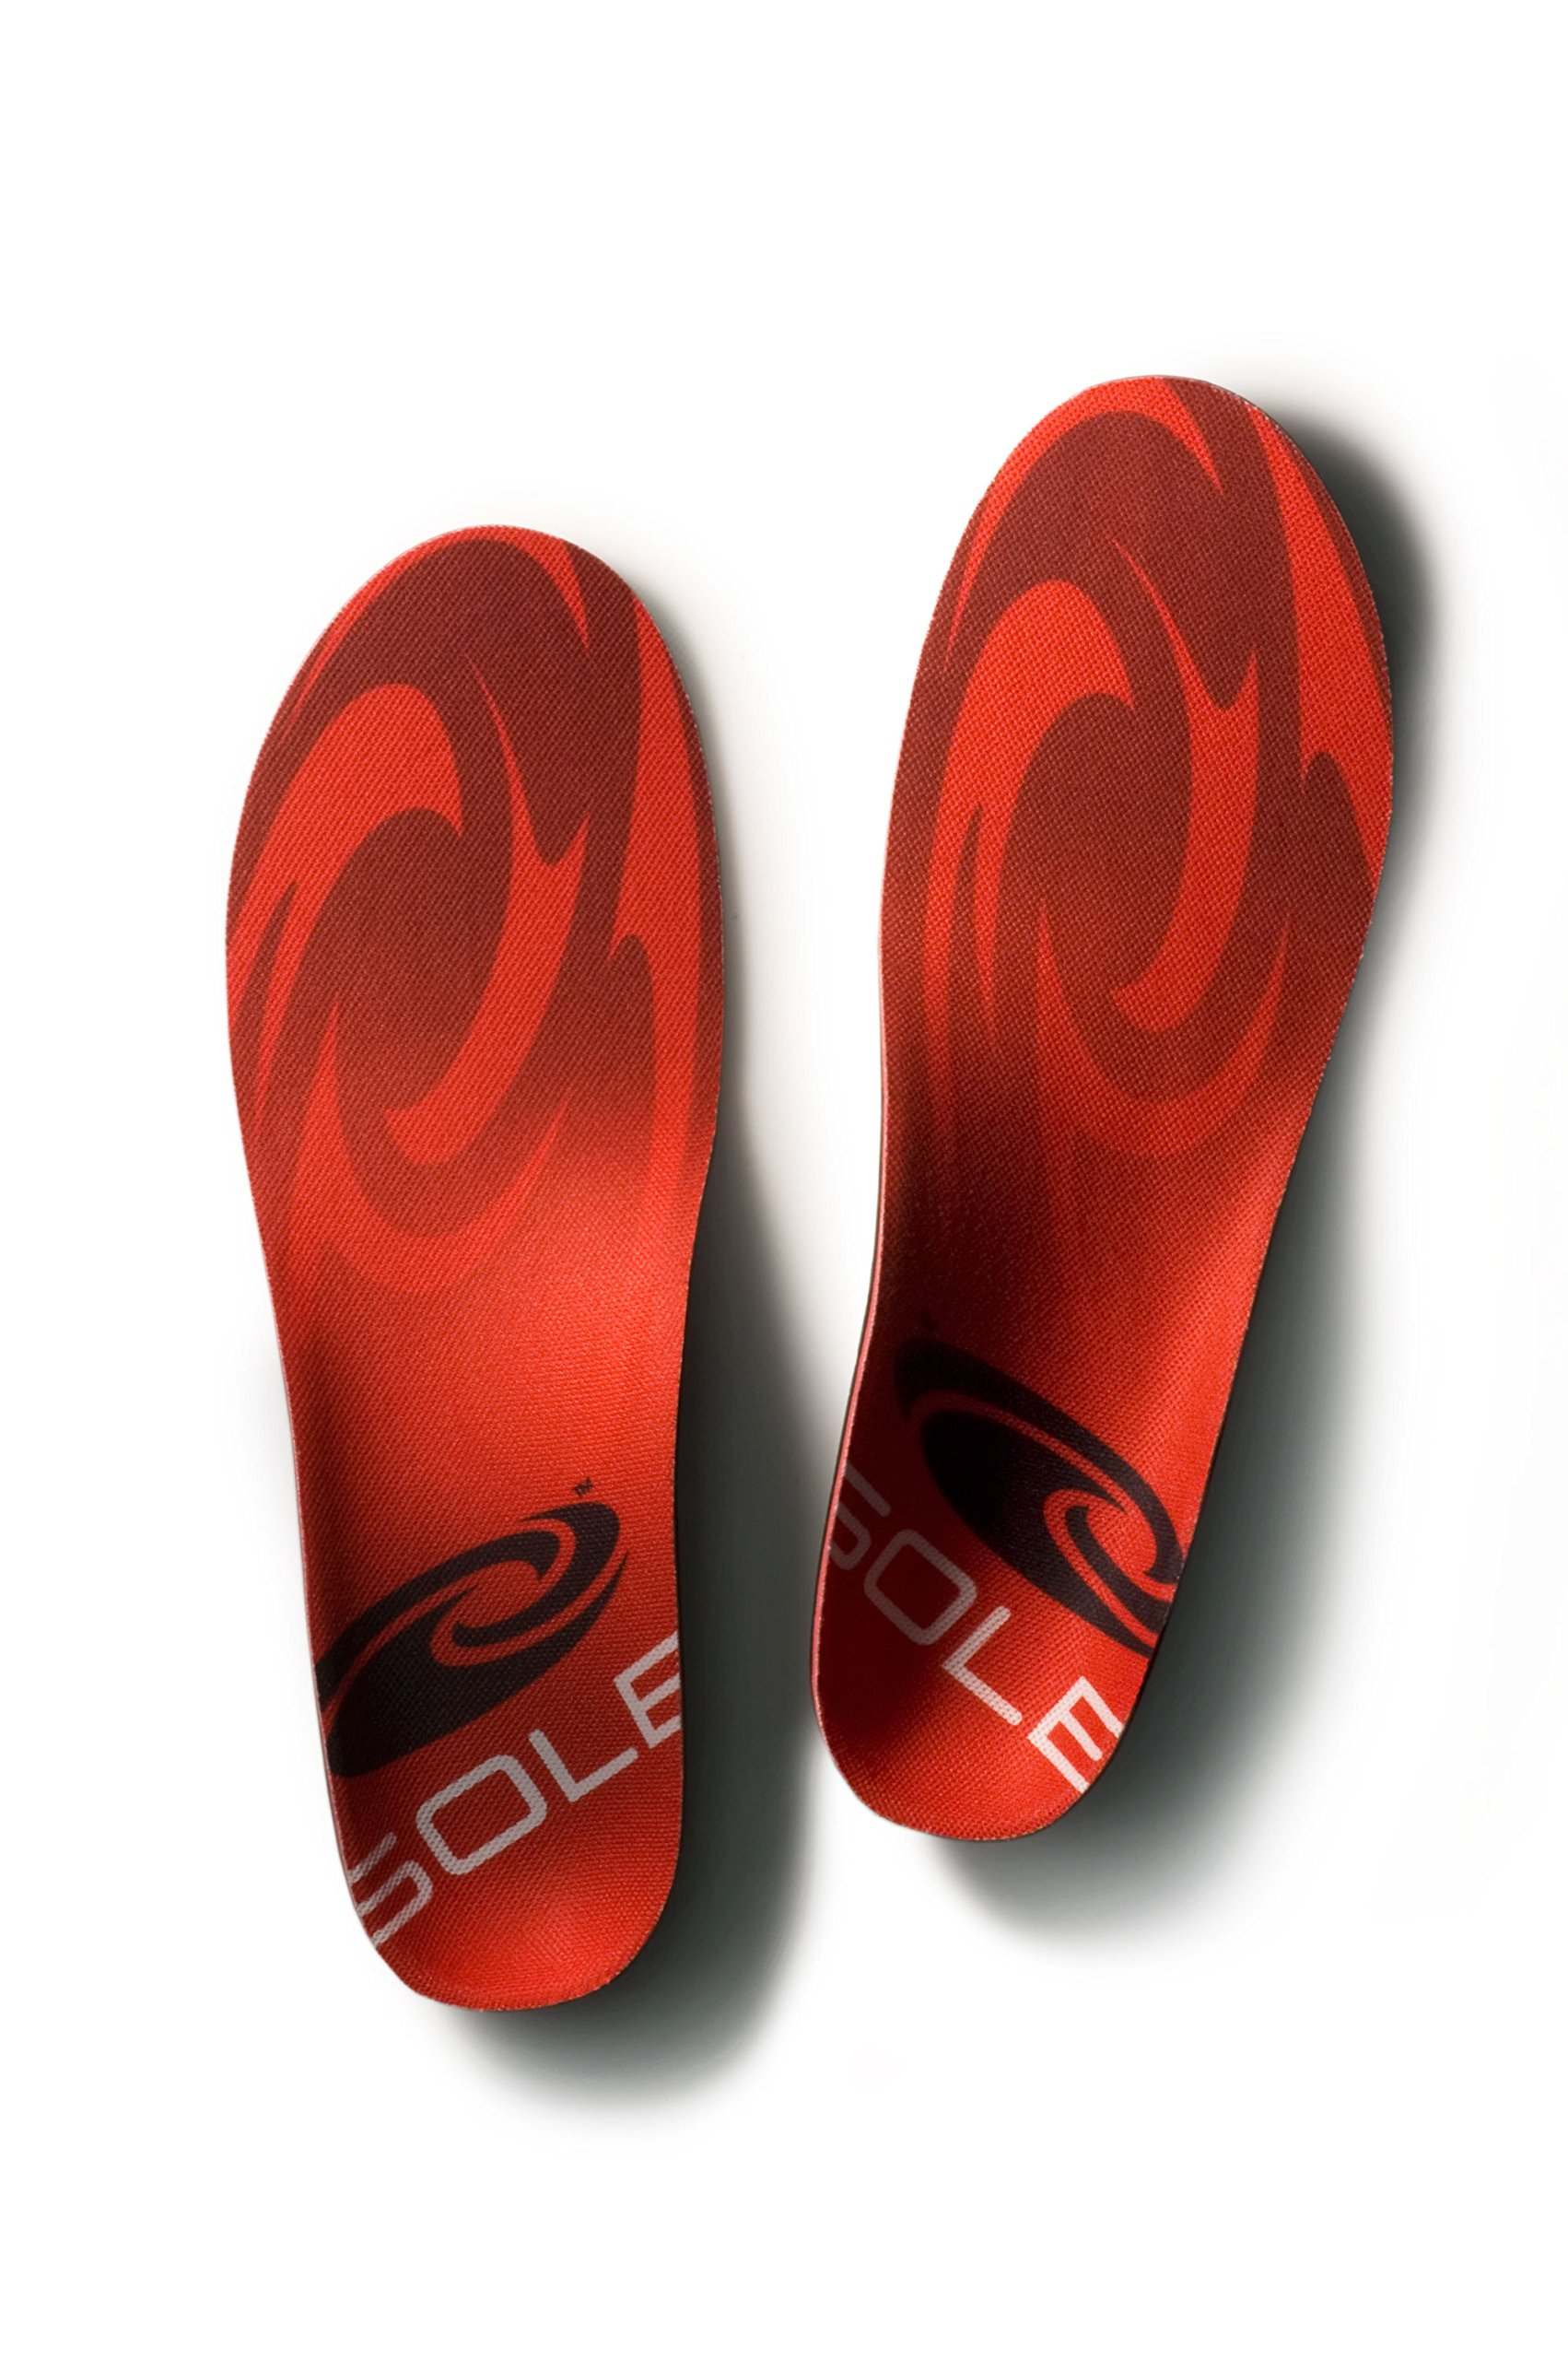 Sole Unisex Softec Regular Insole,Red/Grey,Men's 10.5-11 M/Women's 12.5-13 M by Sole